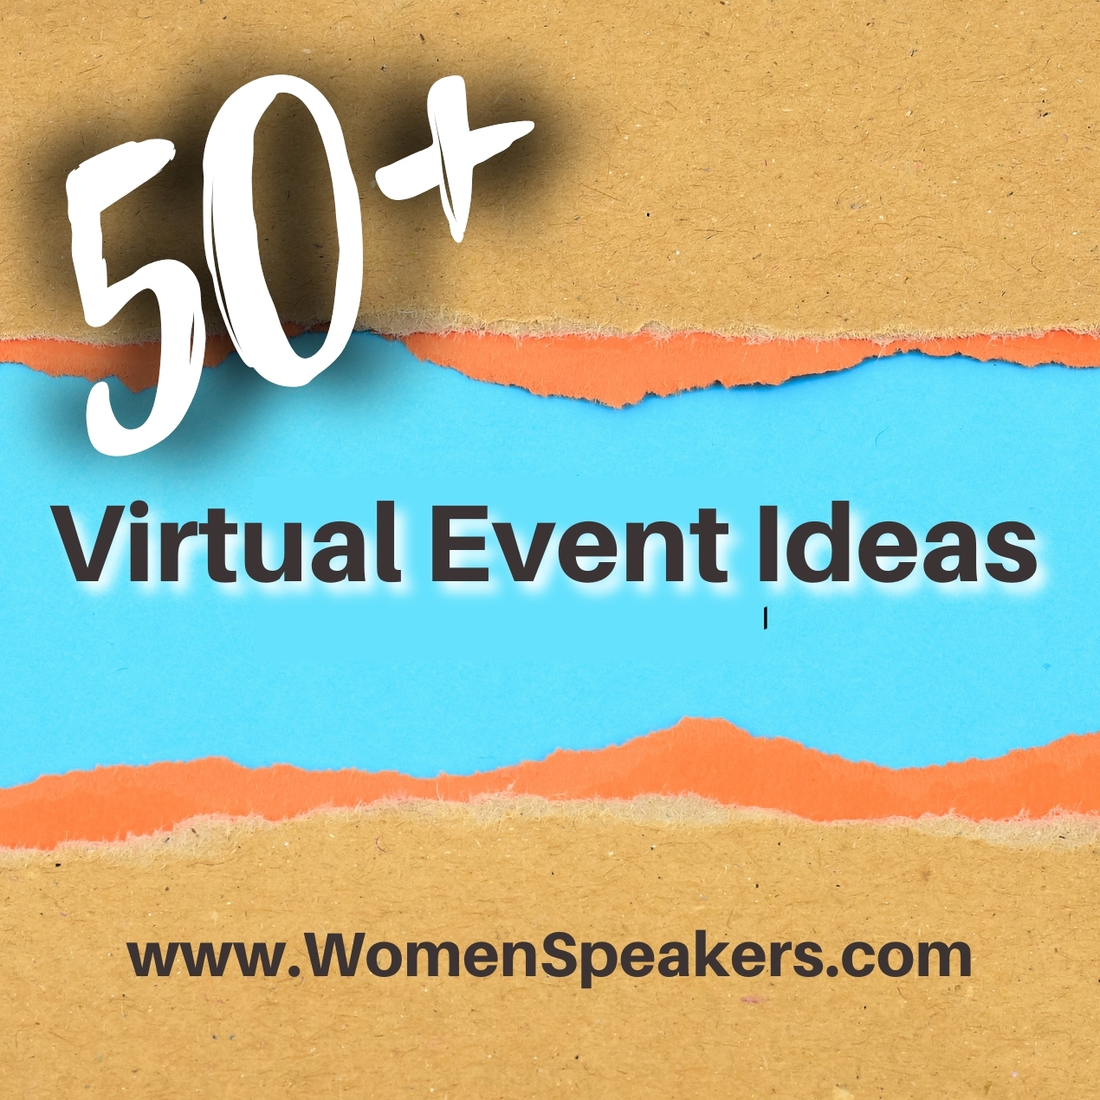 50 Virtual Event Ideas for Christian Women Events